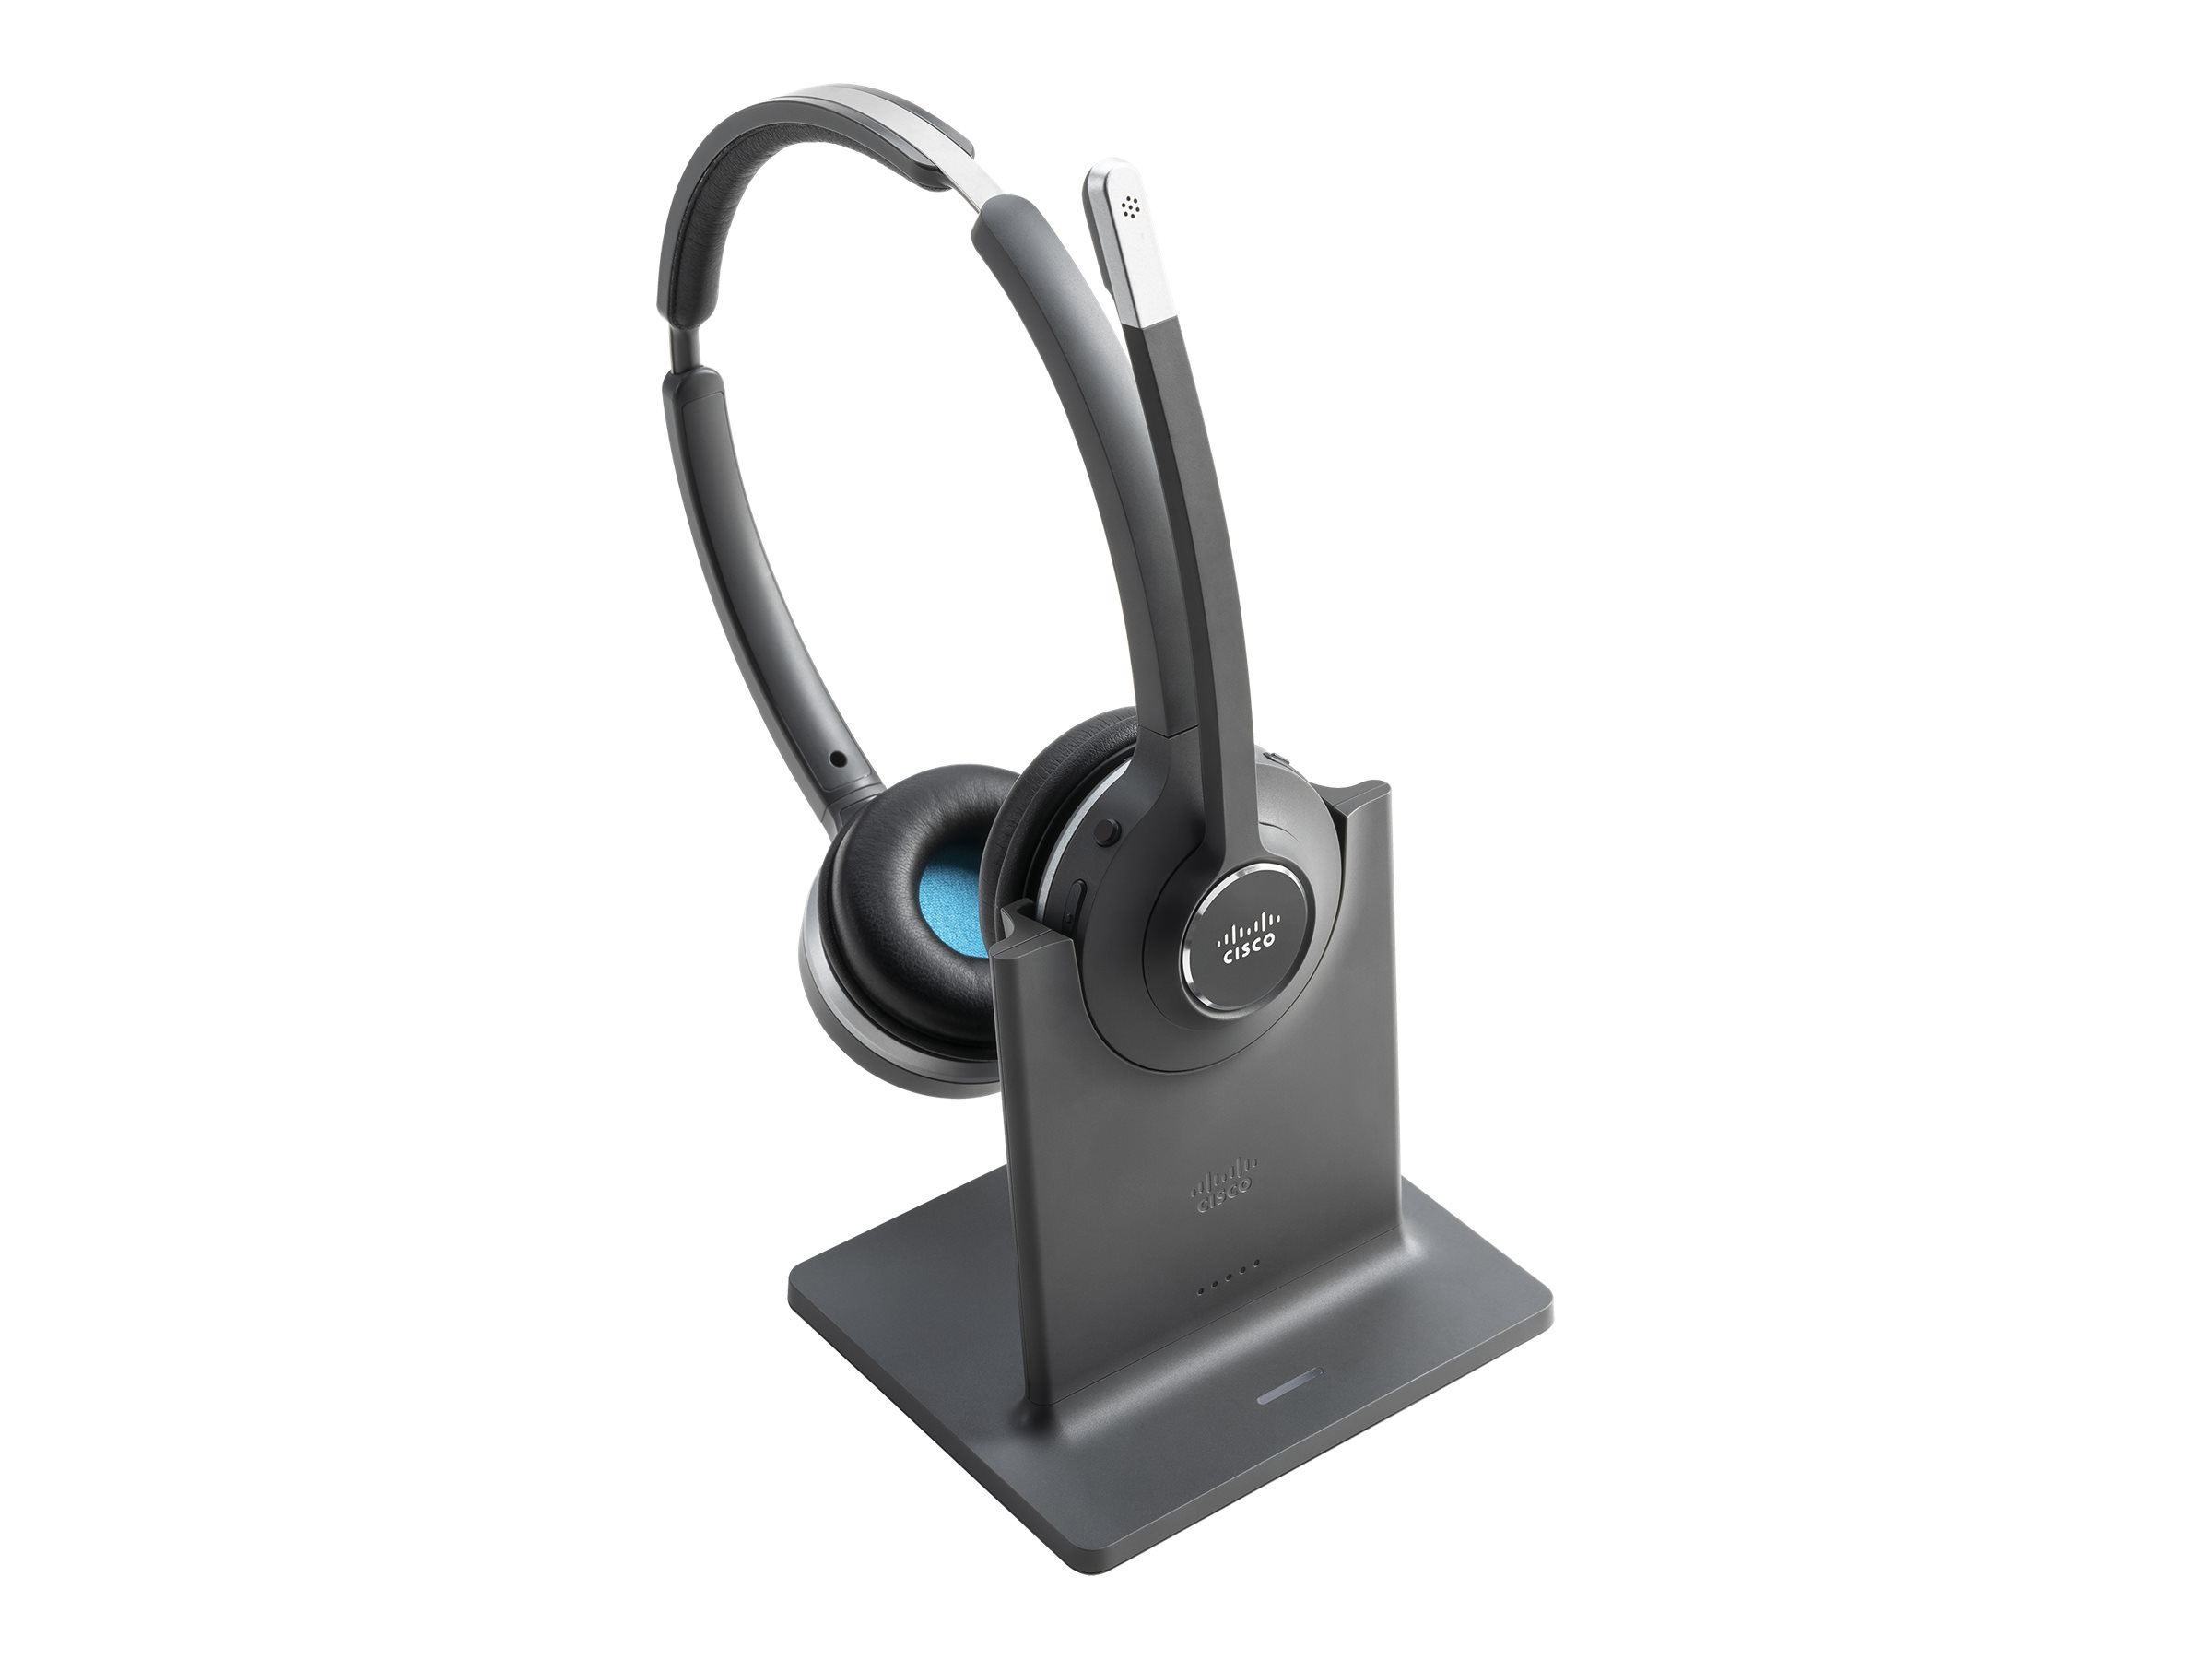 Cisco 562 Wireless Dual - headset - with Multibase Station